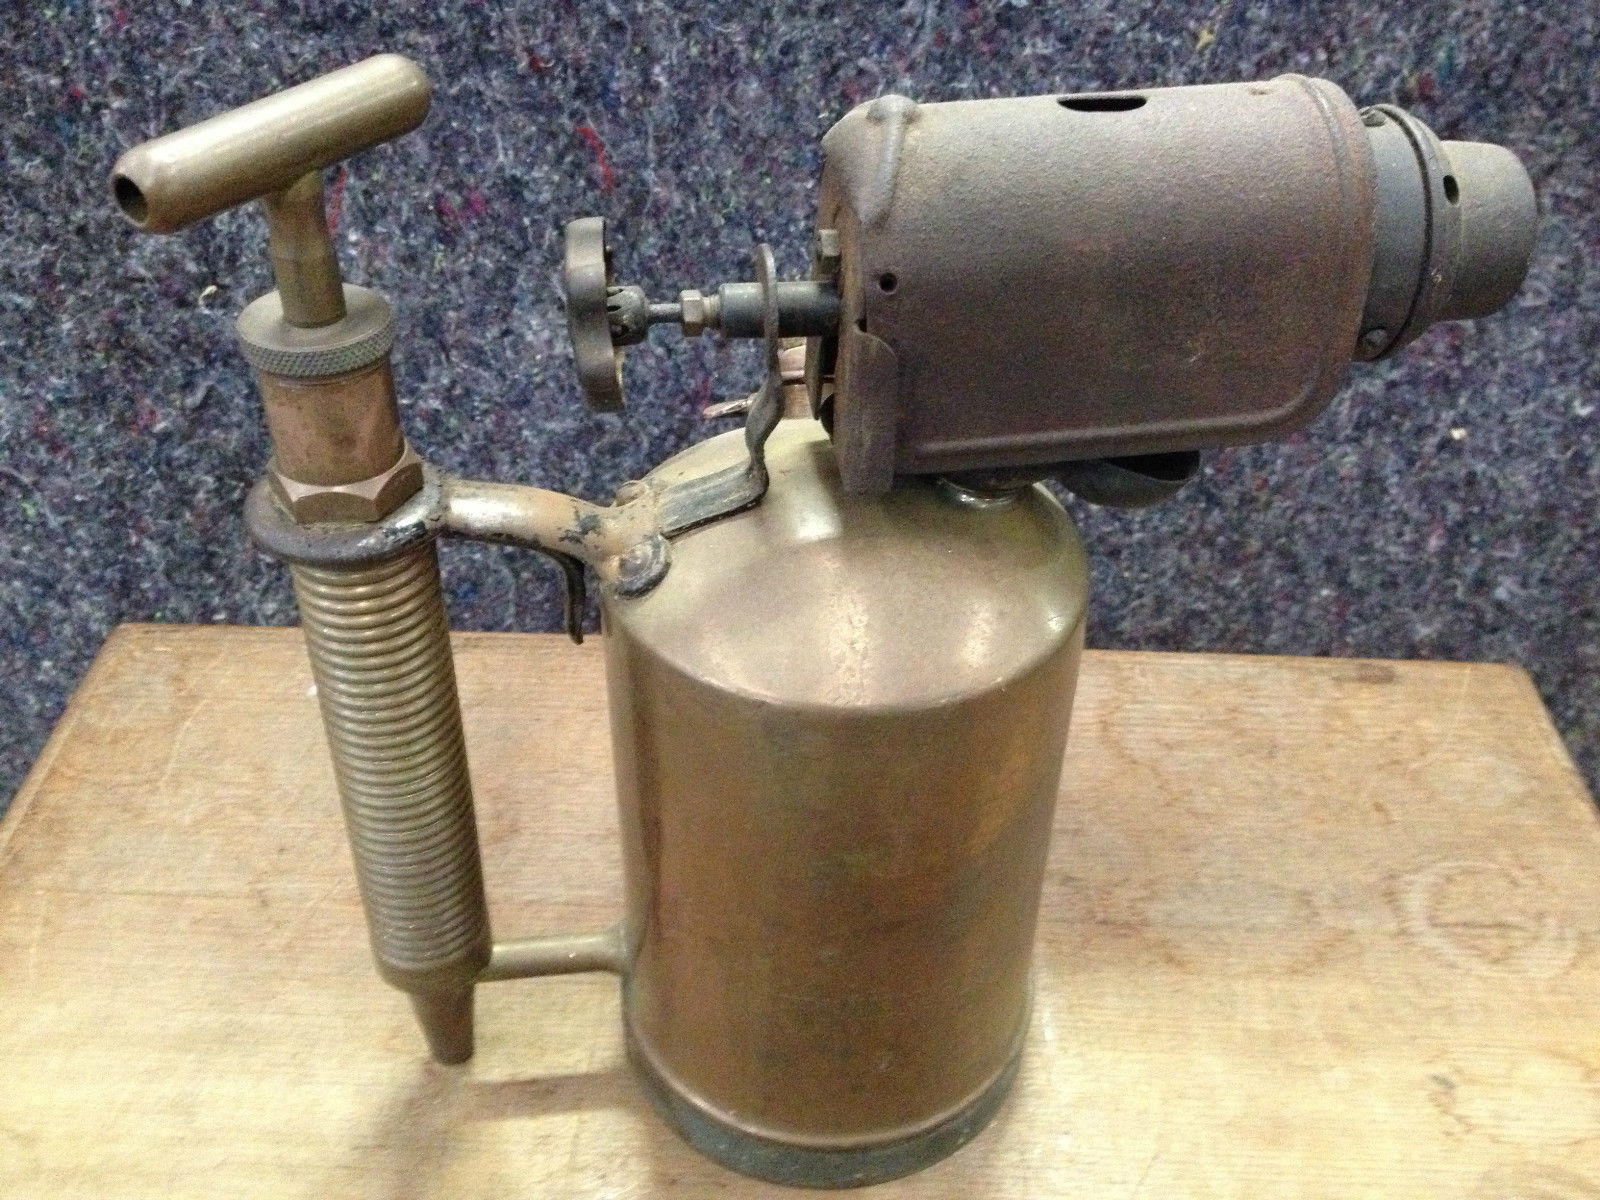 Antique Brass Primus Blow Torch Melbourne Halsey Road